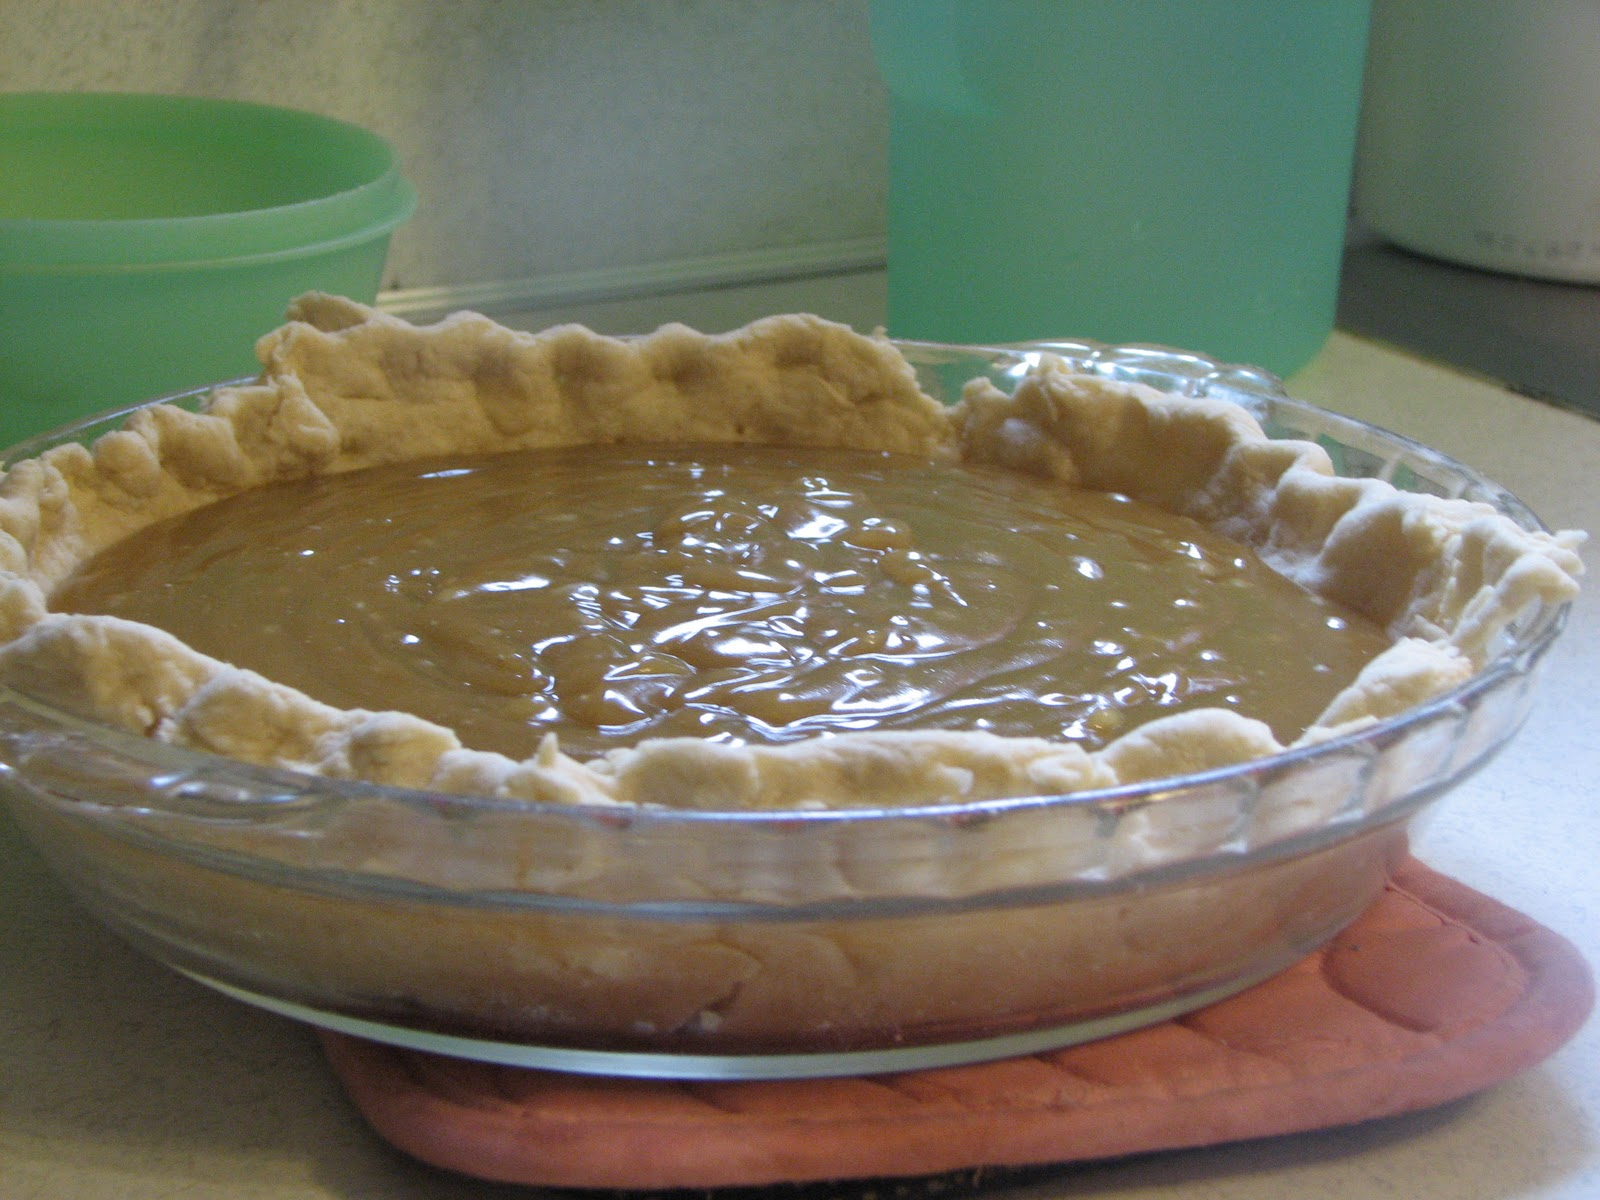 The Bz House That Love Built: Home made Butterscotch Pudding (Pie)